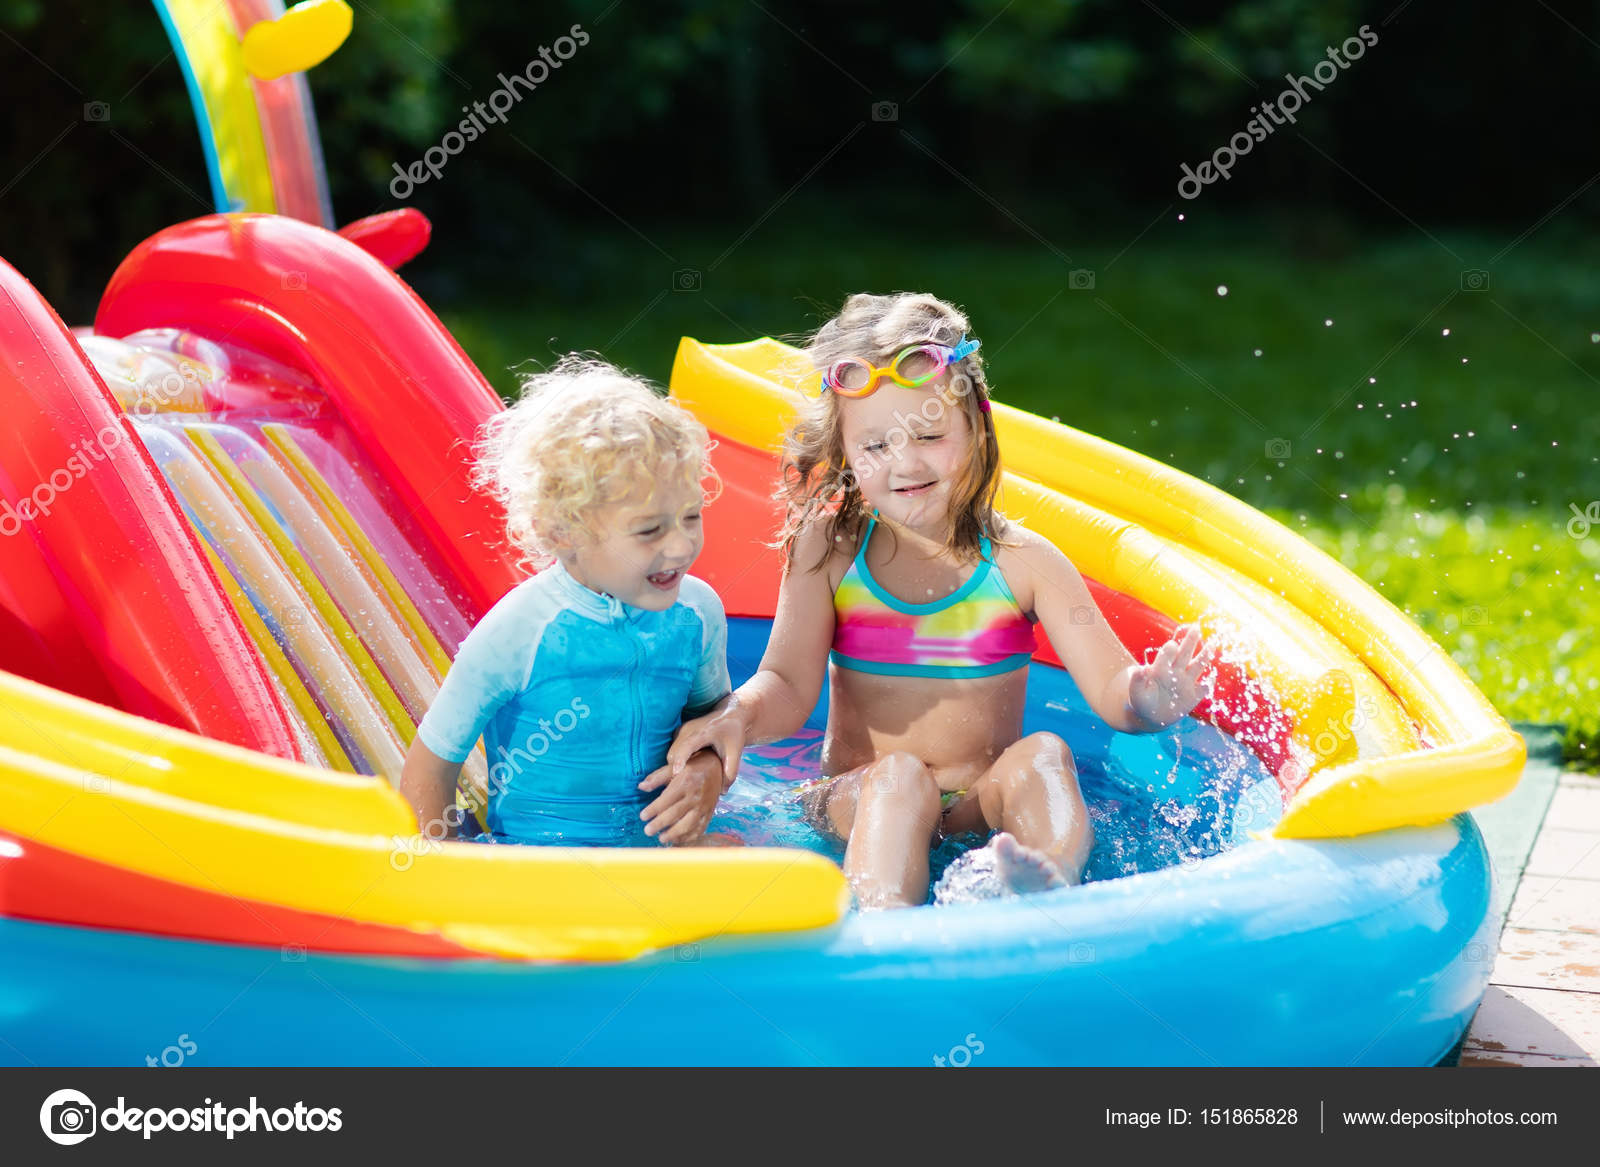 Children Playing In Inflatable Baby Pool With Slide Kids Swim And Splash Colorful Garden Play Center Happy Boy Girl Water Toys On Hot